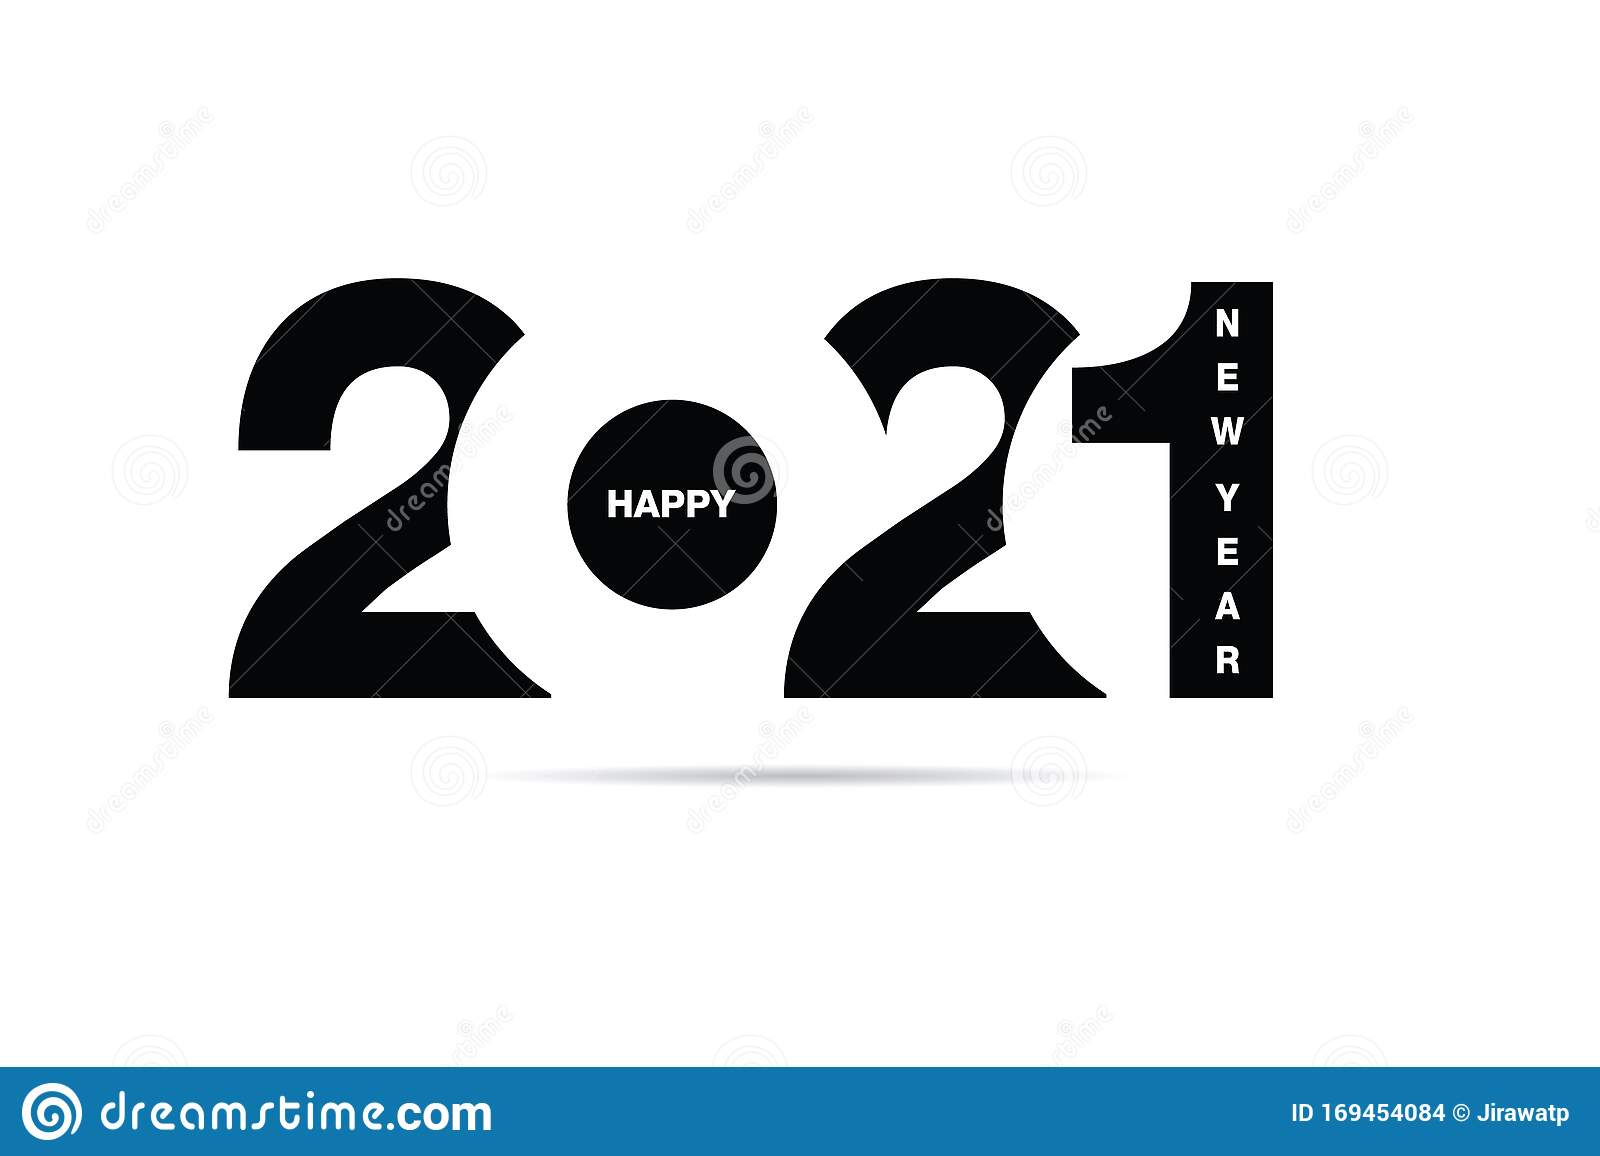 Happy New Year 2021 Text Design Vector Eps 10 Stock Vector Illustration Of Graphic Decoration 169454084